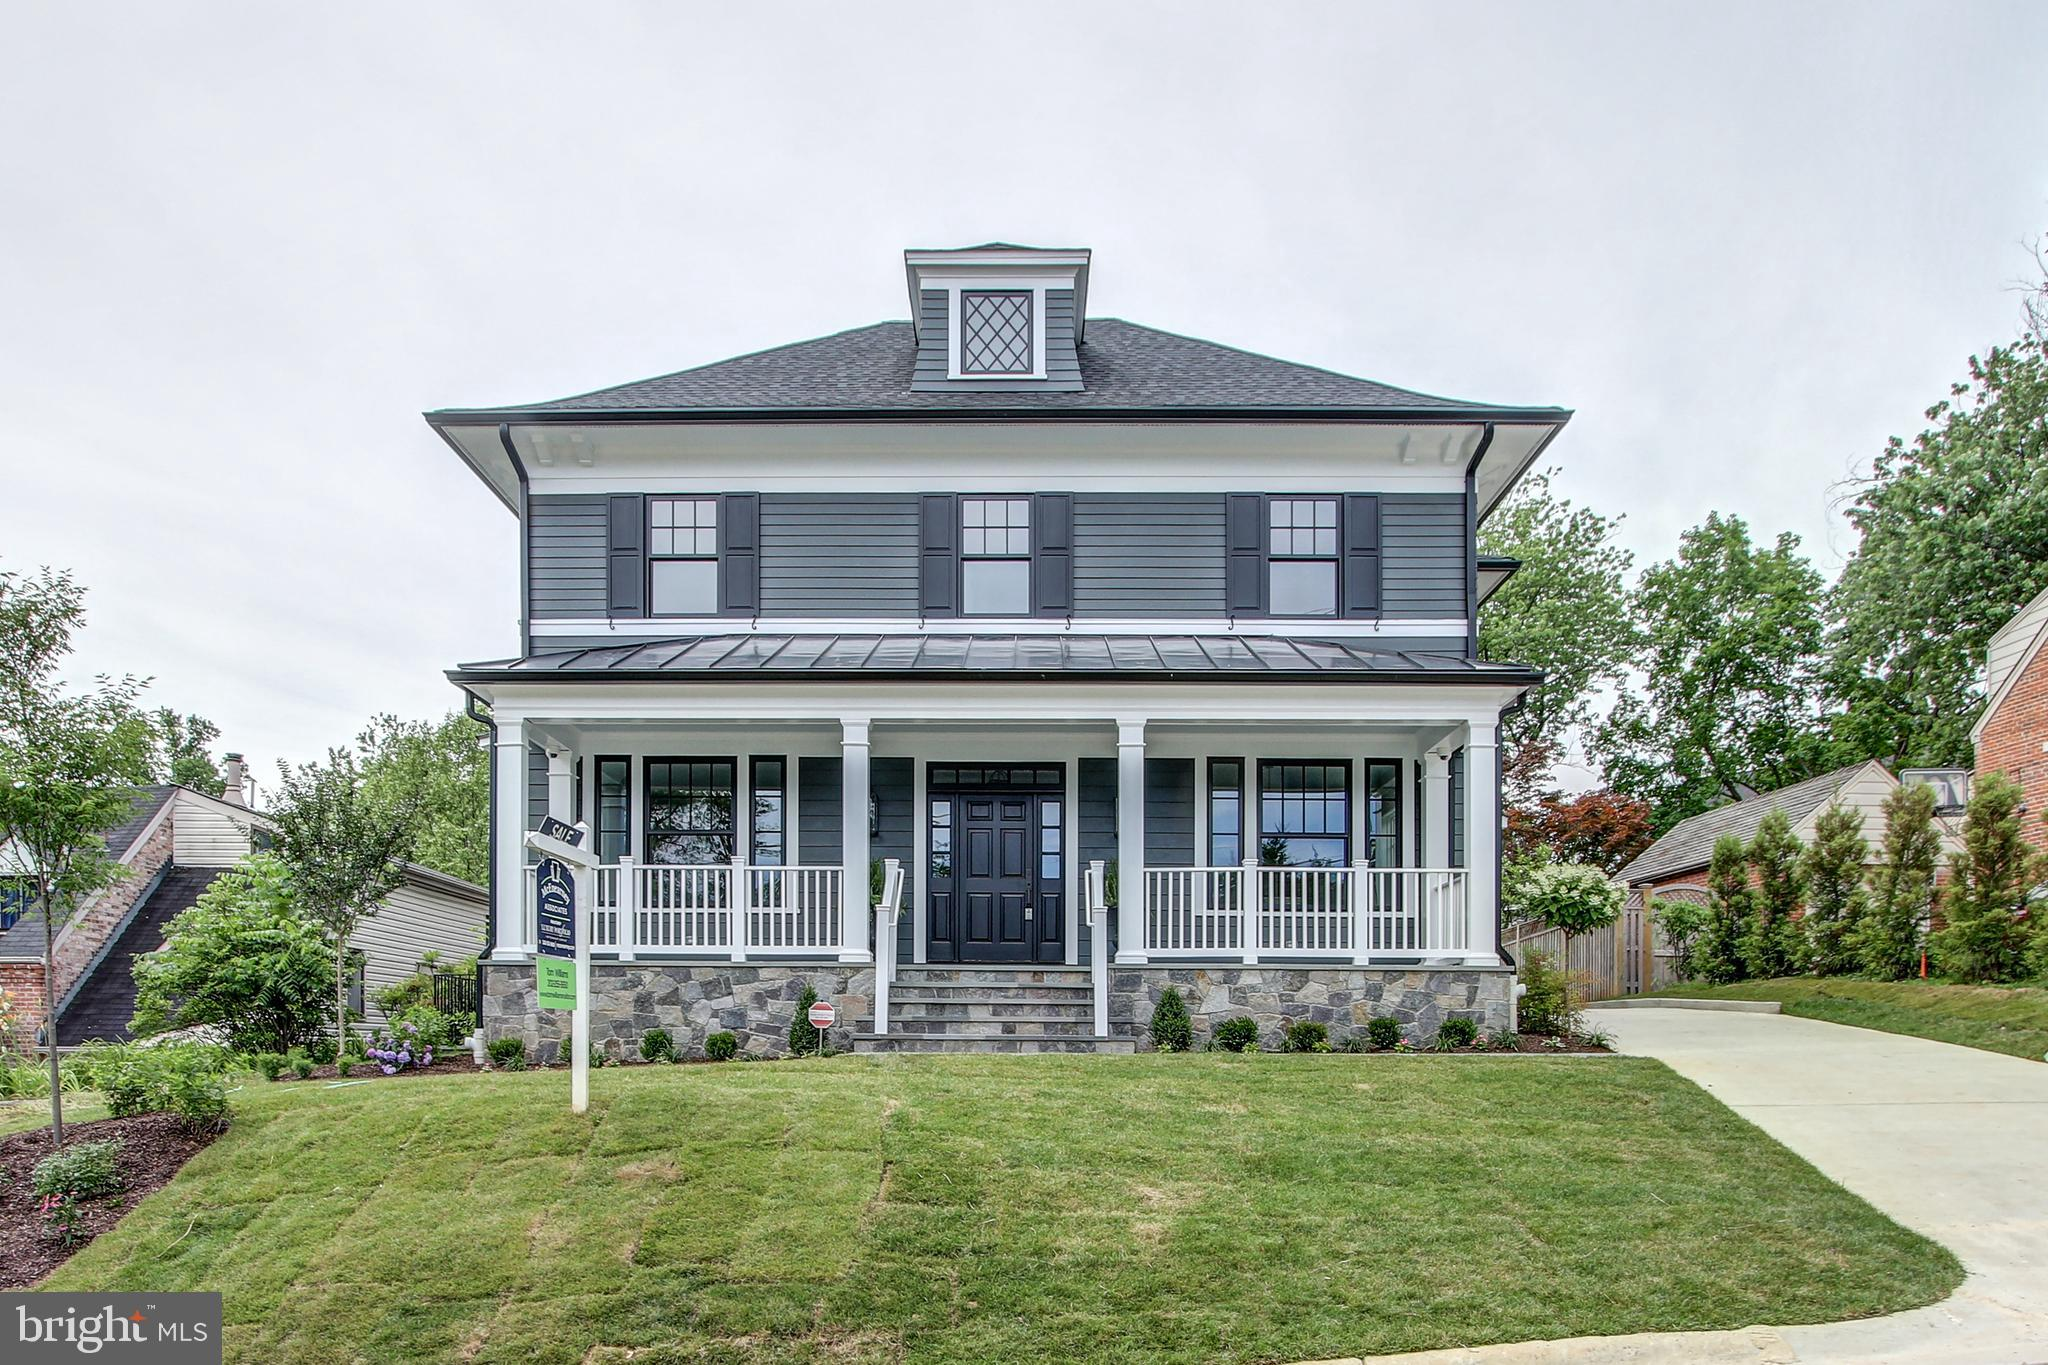 3304 CUMMINGS LANE, CHEVY CHASE, MD 20815